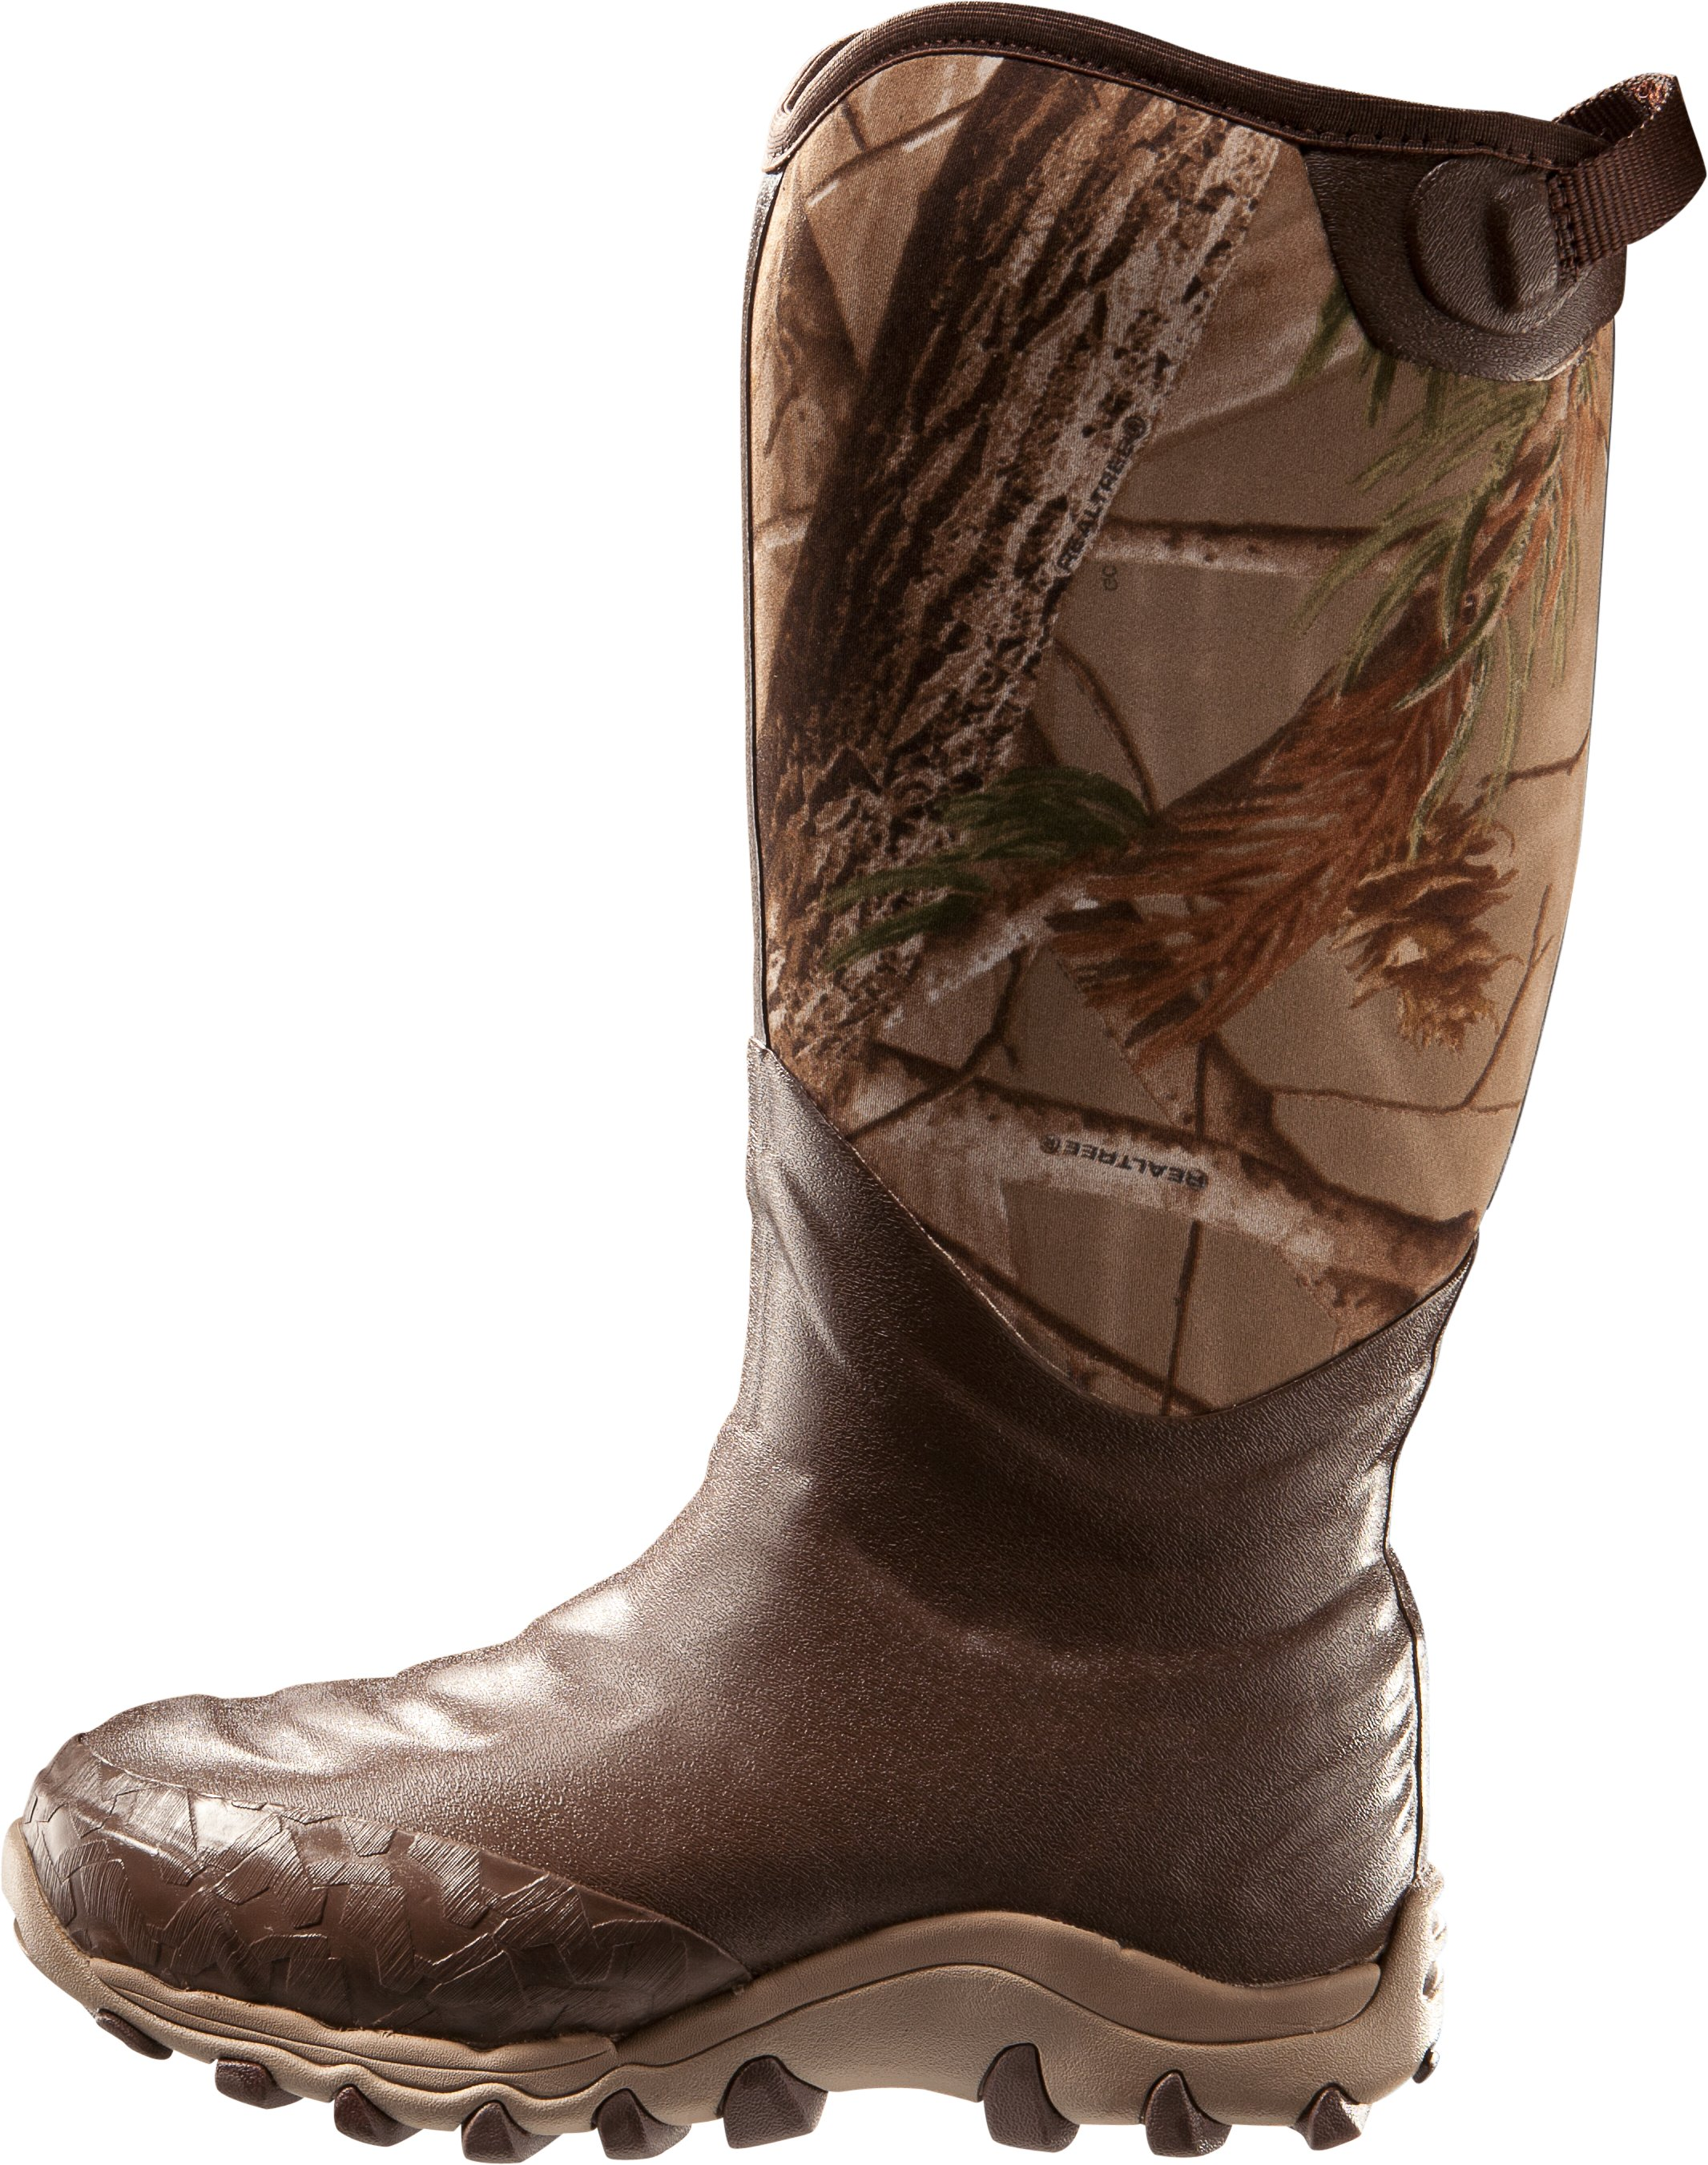 Men's UA H.A.W. 800g Hunting Boots, Realtree AP